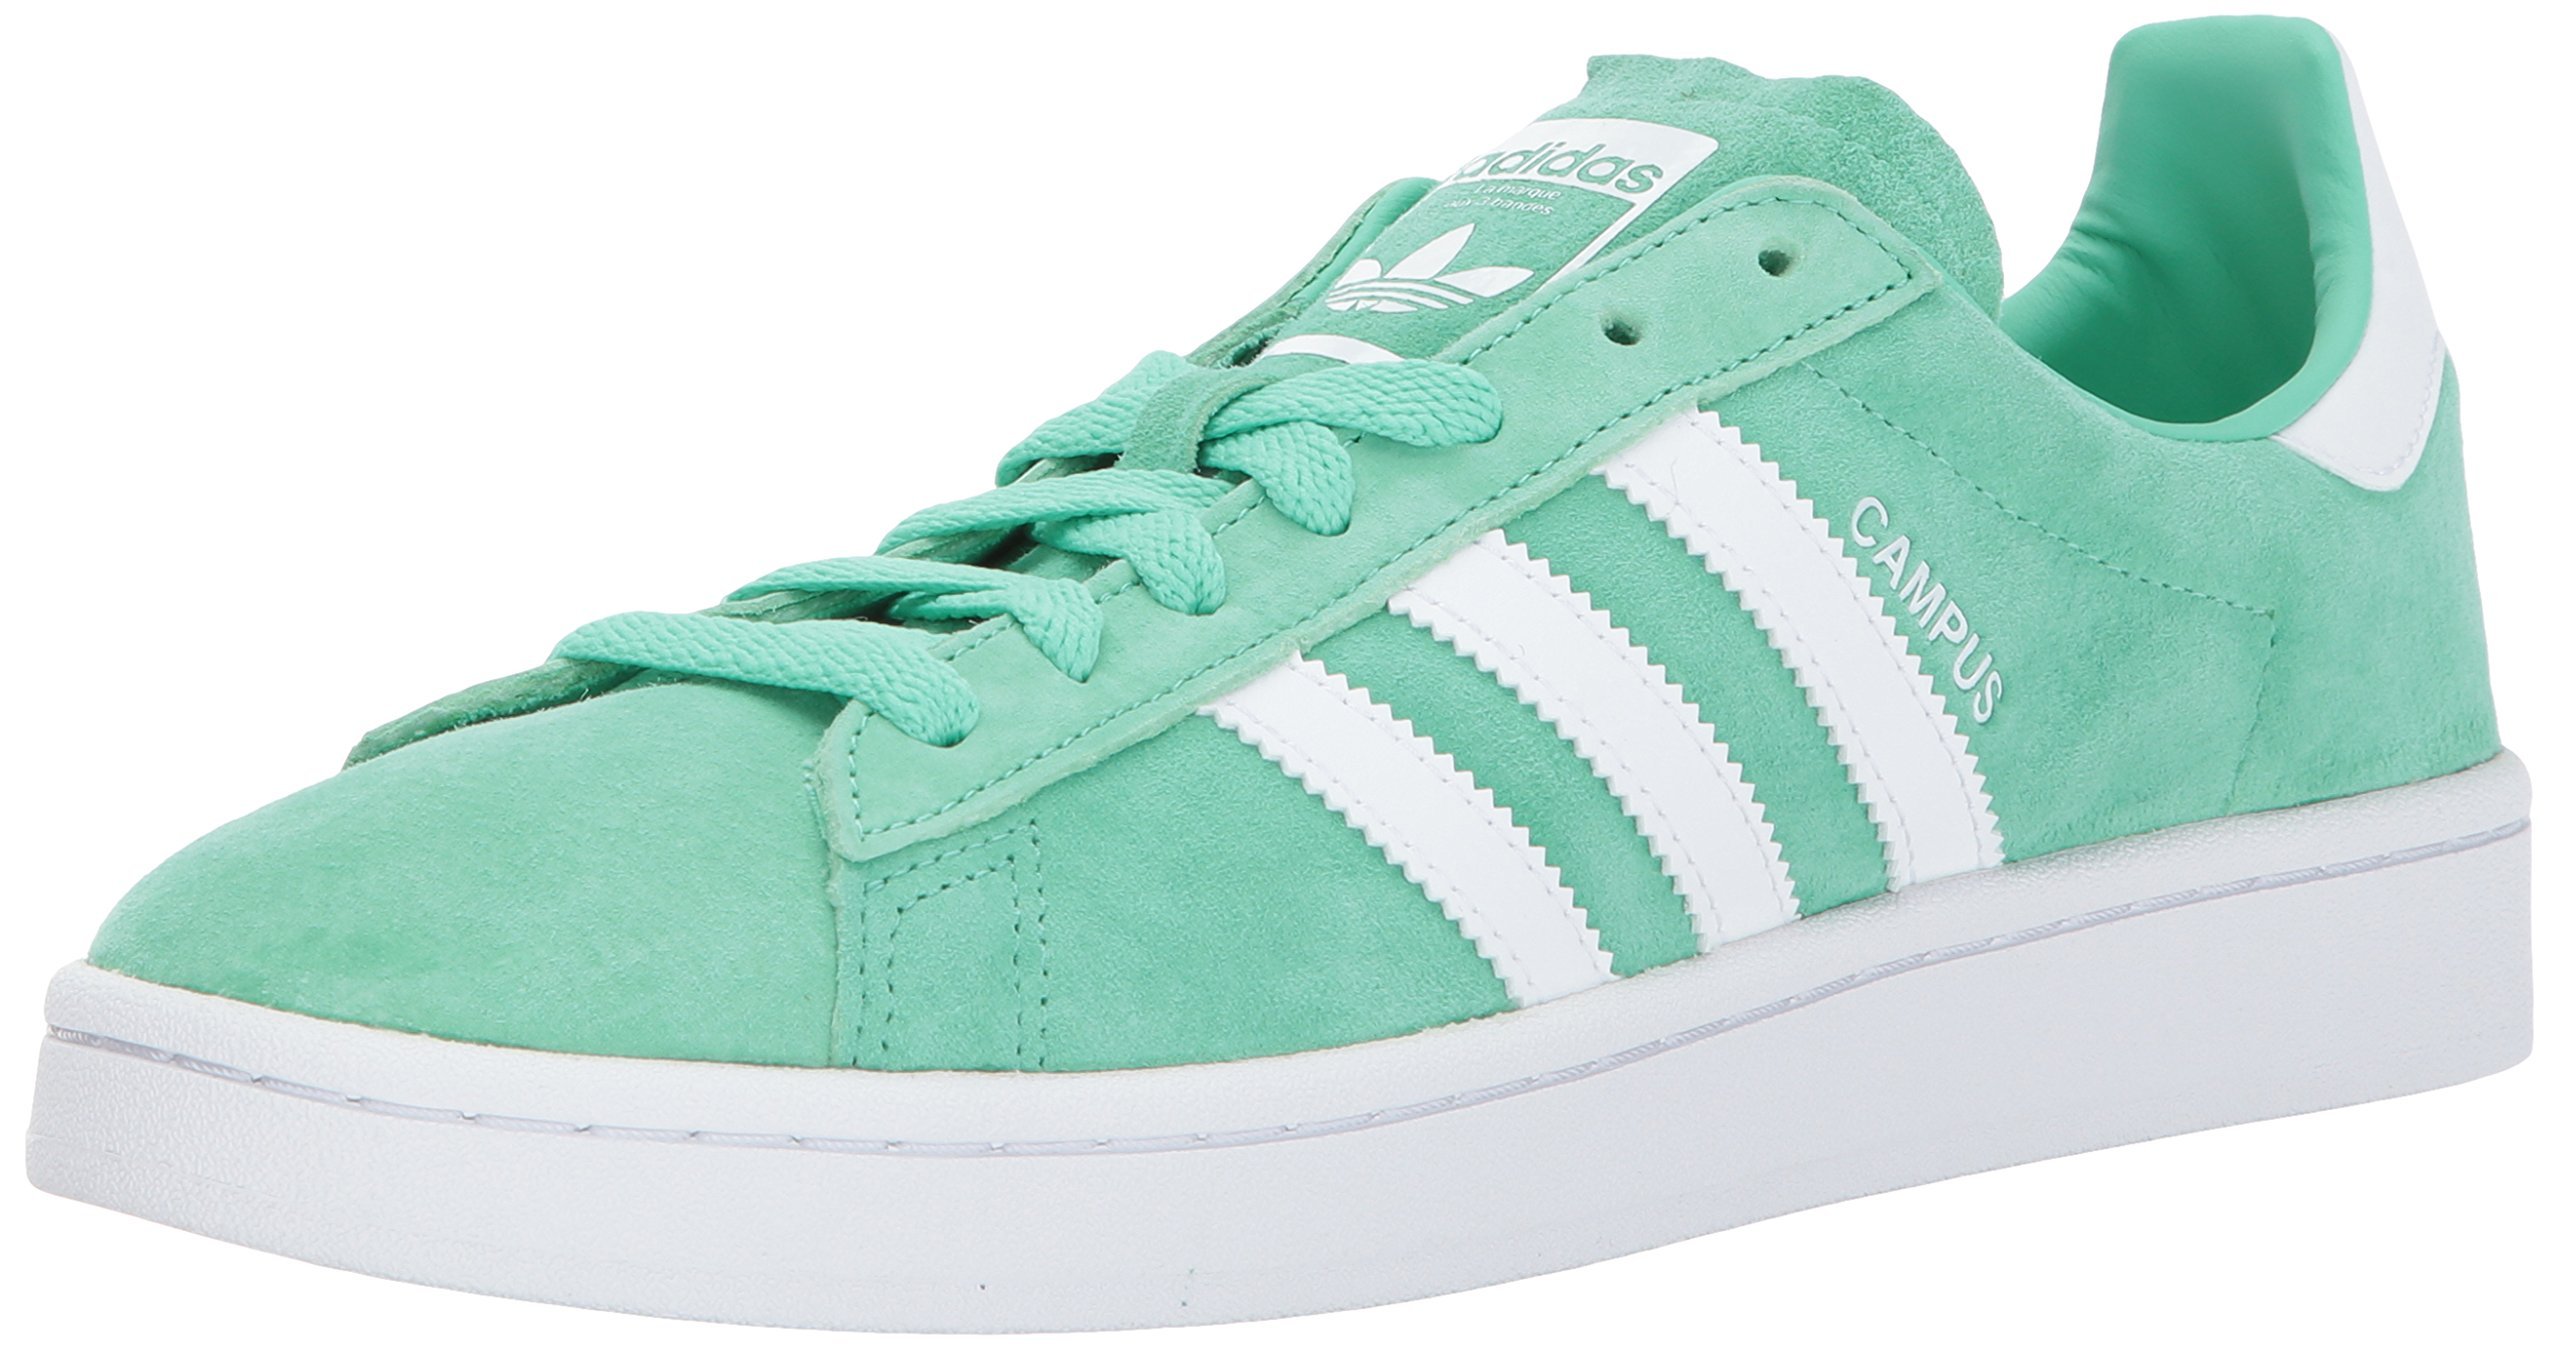 adidas Originals Men's Campus Sneakers -, Green Glow Crystal White, (11 M US) by adidas Originals (Image #1)